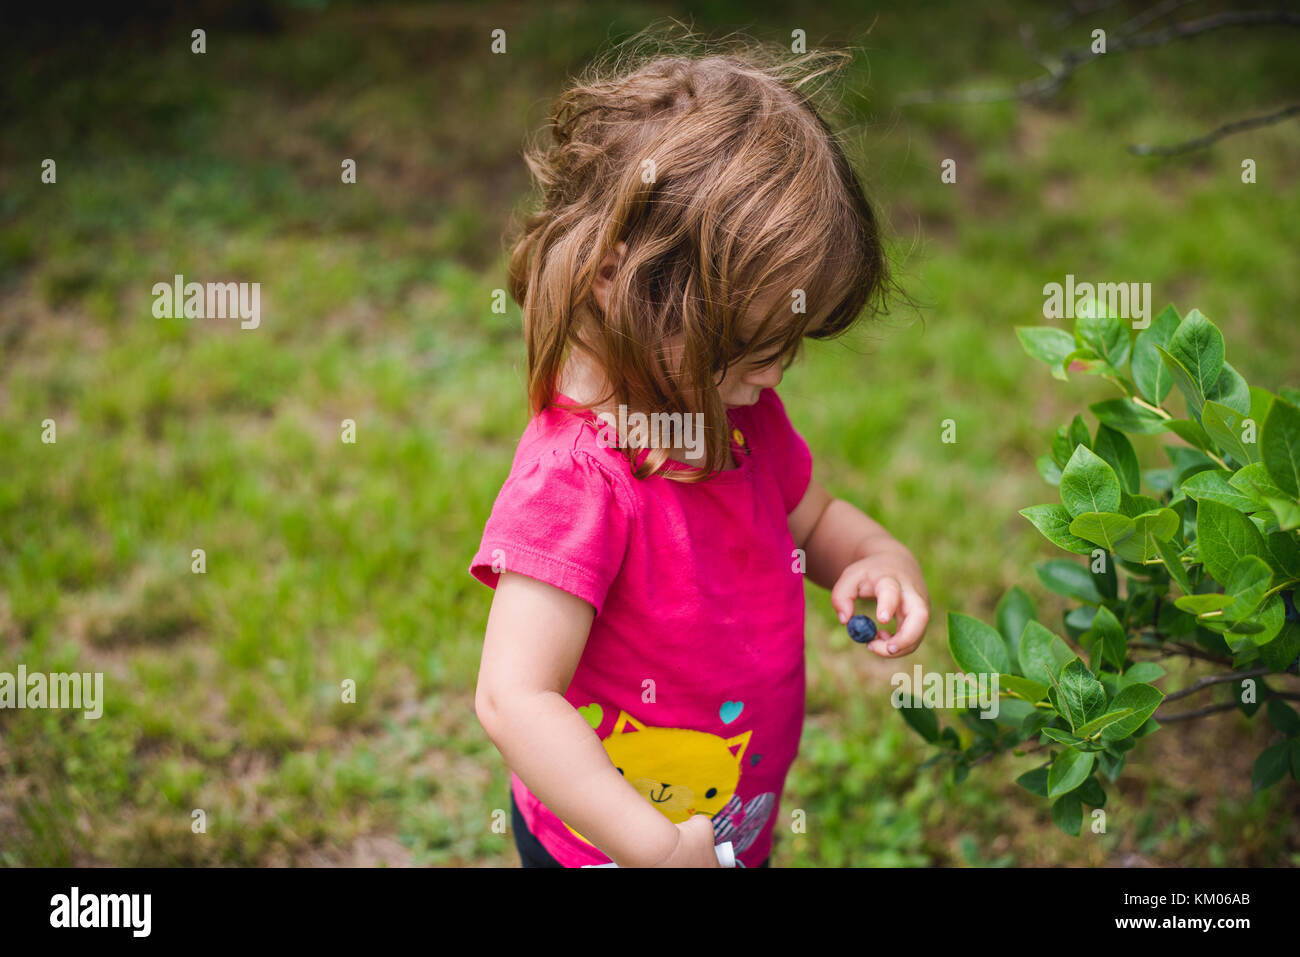 A young girl holds a blueberry next to a blueberry bush - Stock Image